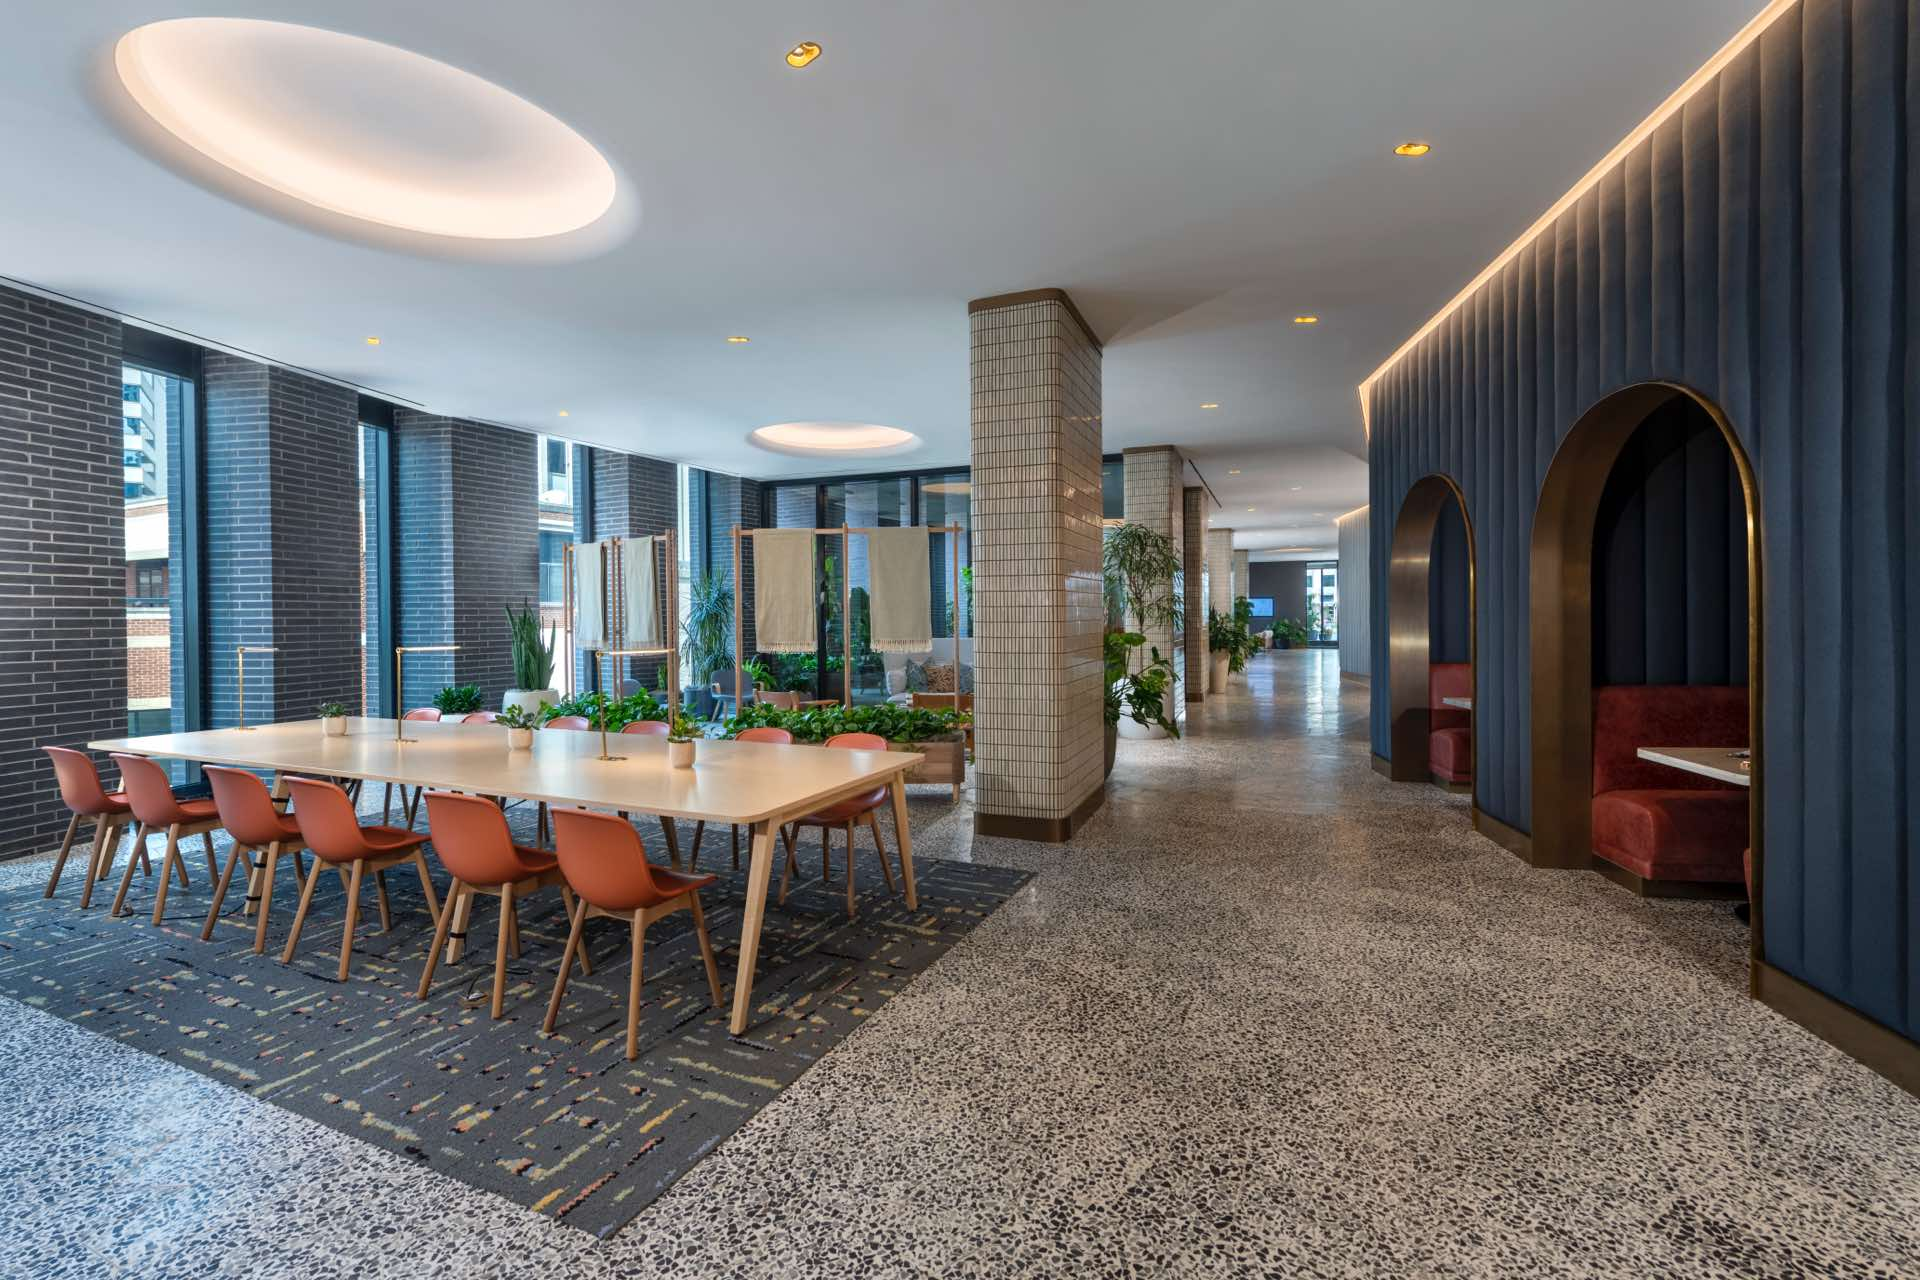 Driven by clean, contemporary design, the semi-private workspaces are a refreshing alternative to the office.